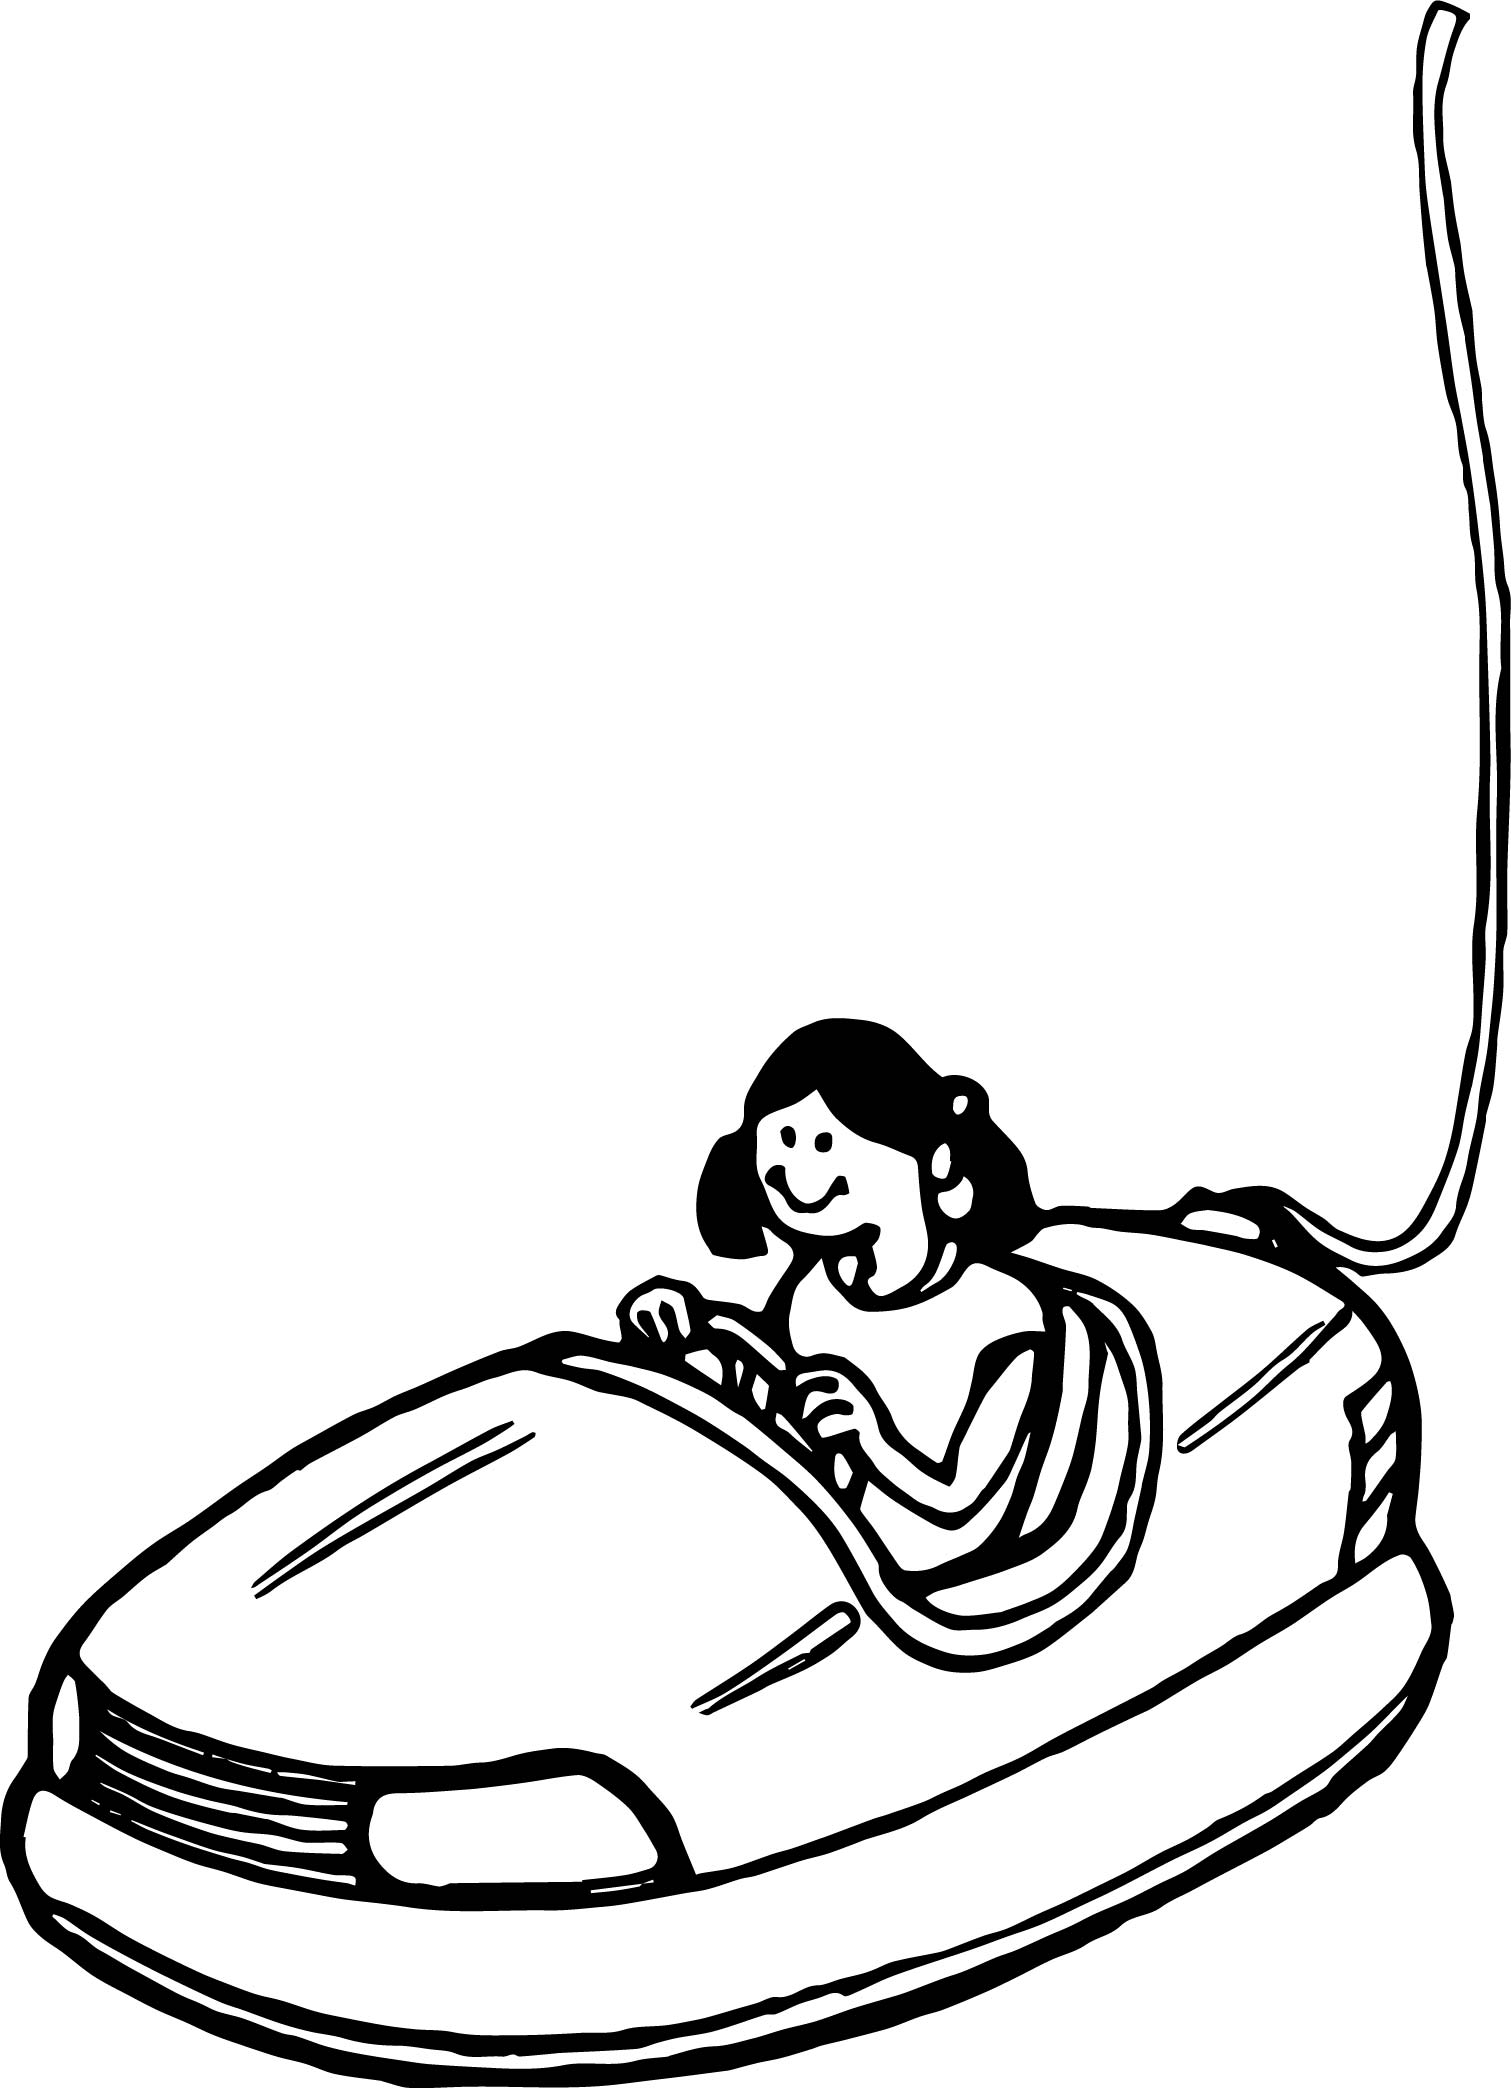 Electric Toy Car Coloring Page